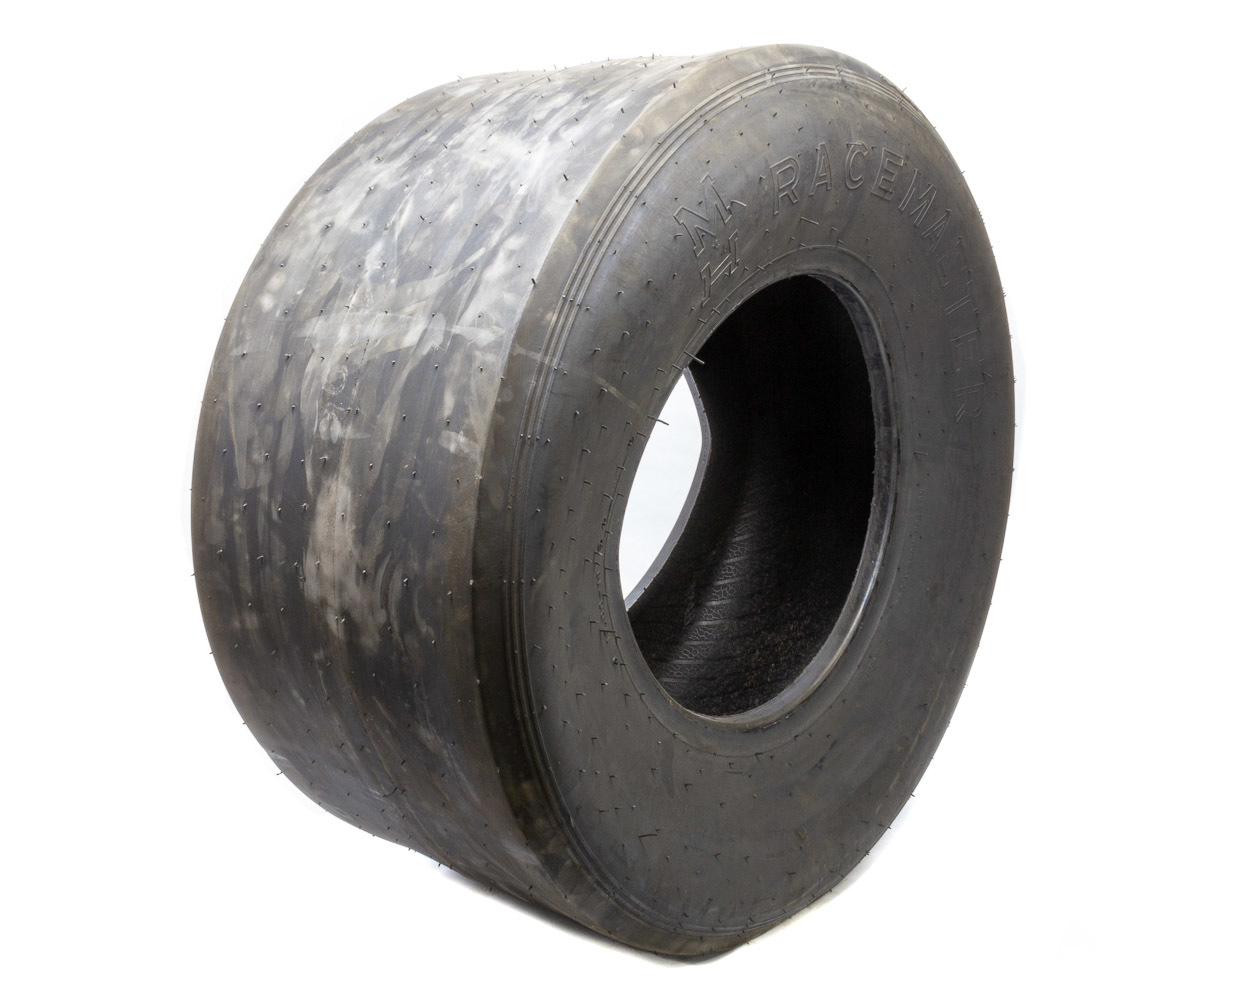 Rear Slick 13.00/16 Tire